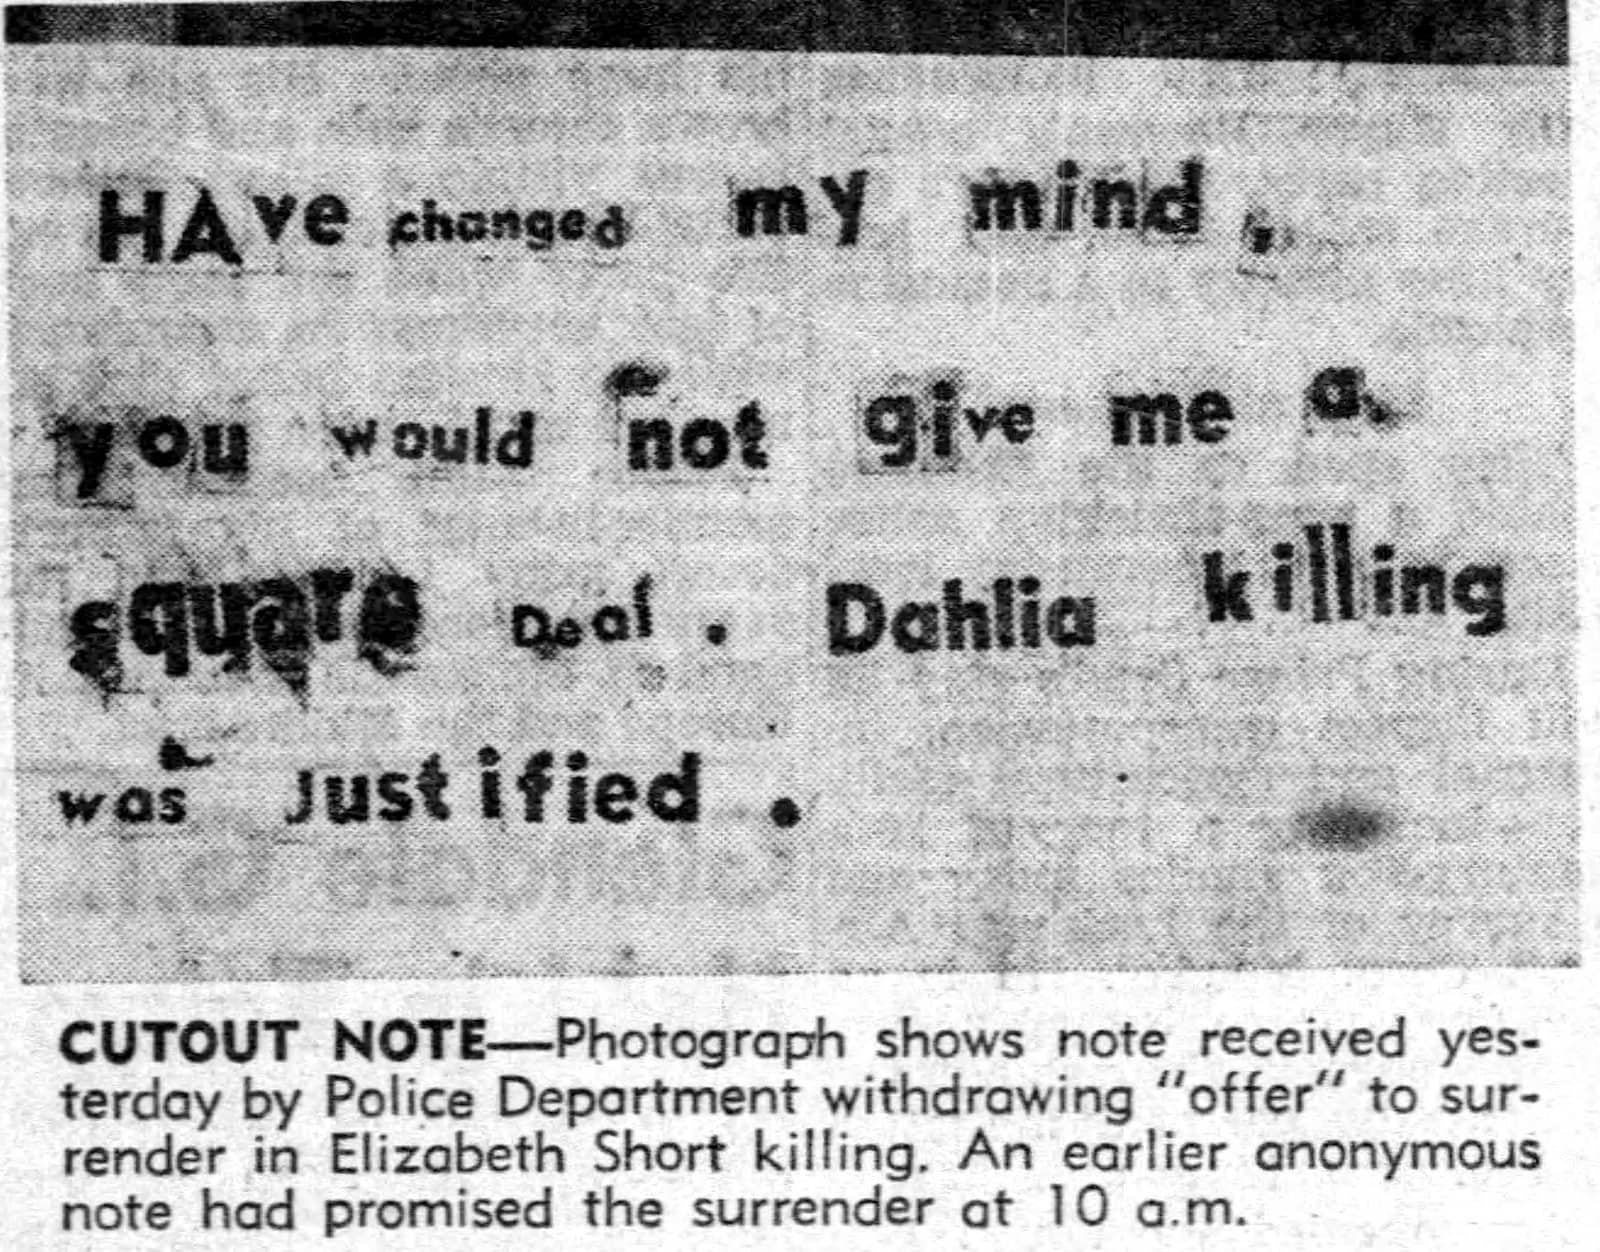 Second cutout note about Black Dahlia murder - January 30 1947